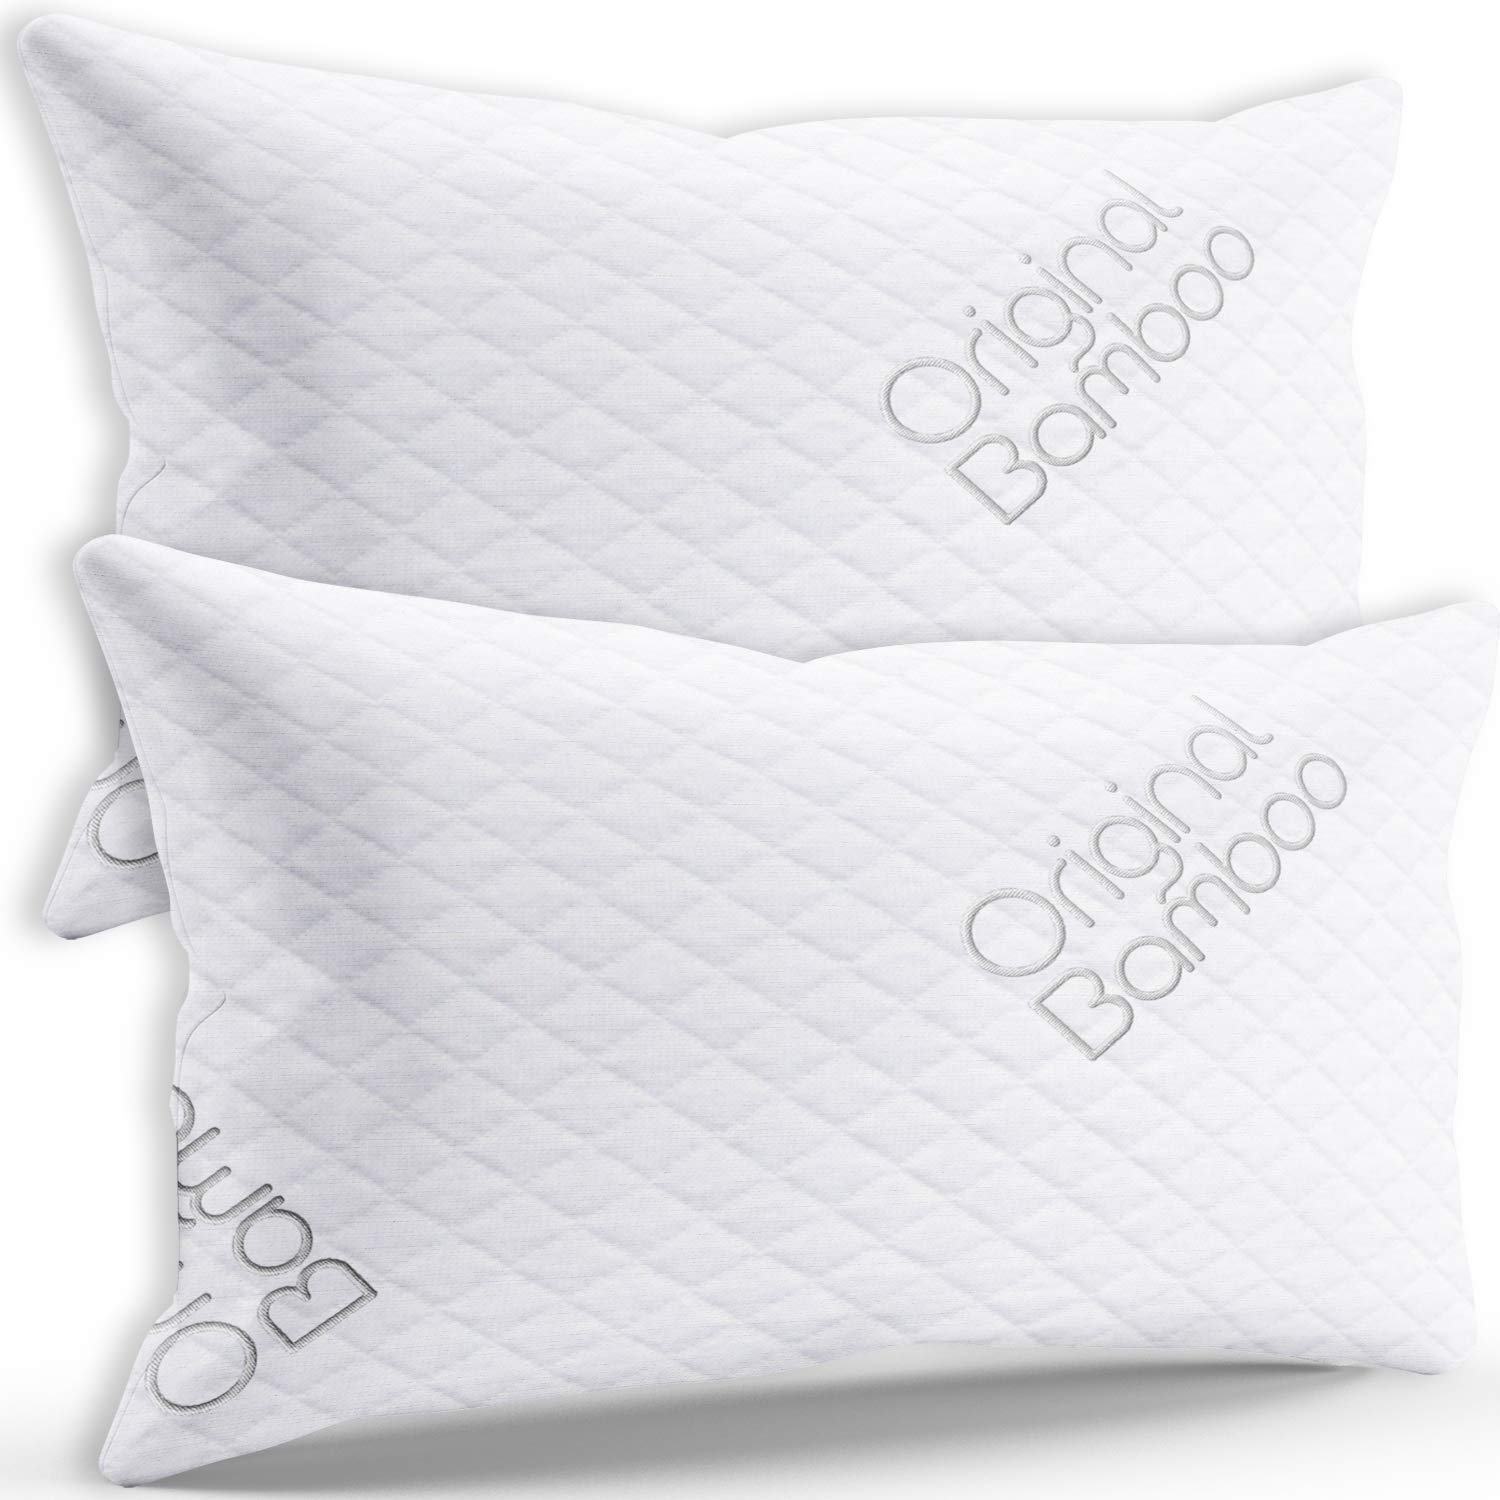 Premium Luxury Pillows topratedhomeproducts